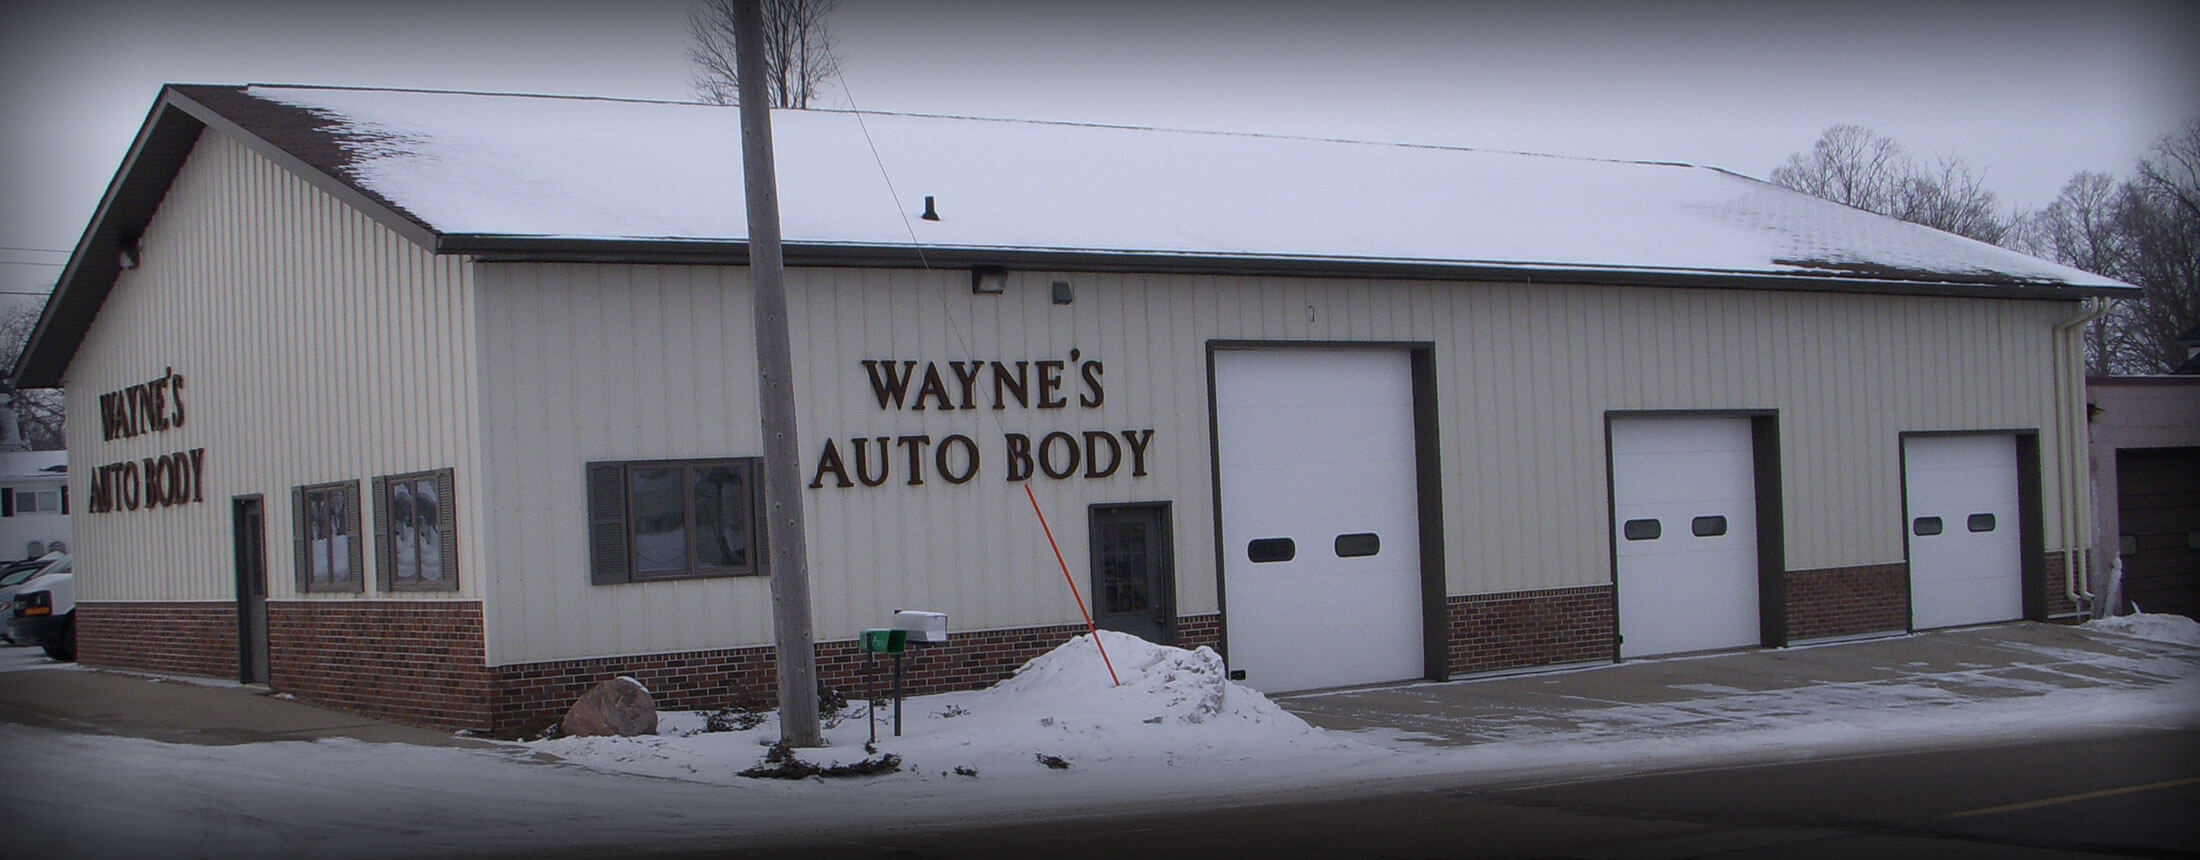 Exterior of Wayne's Auto Body shop in Le Center, MN